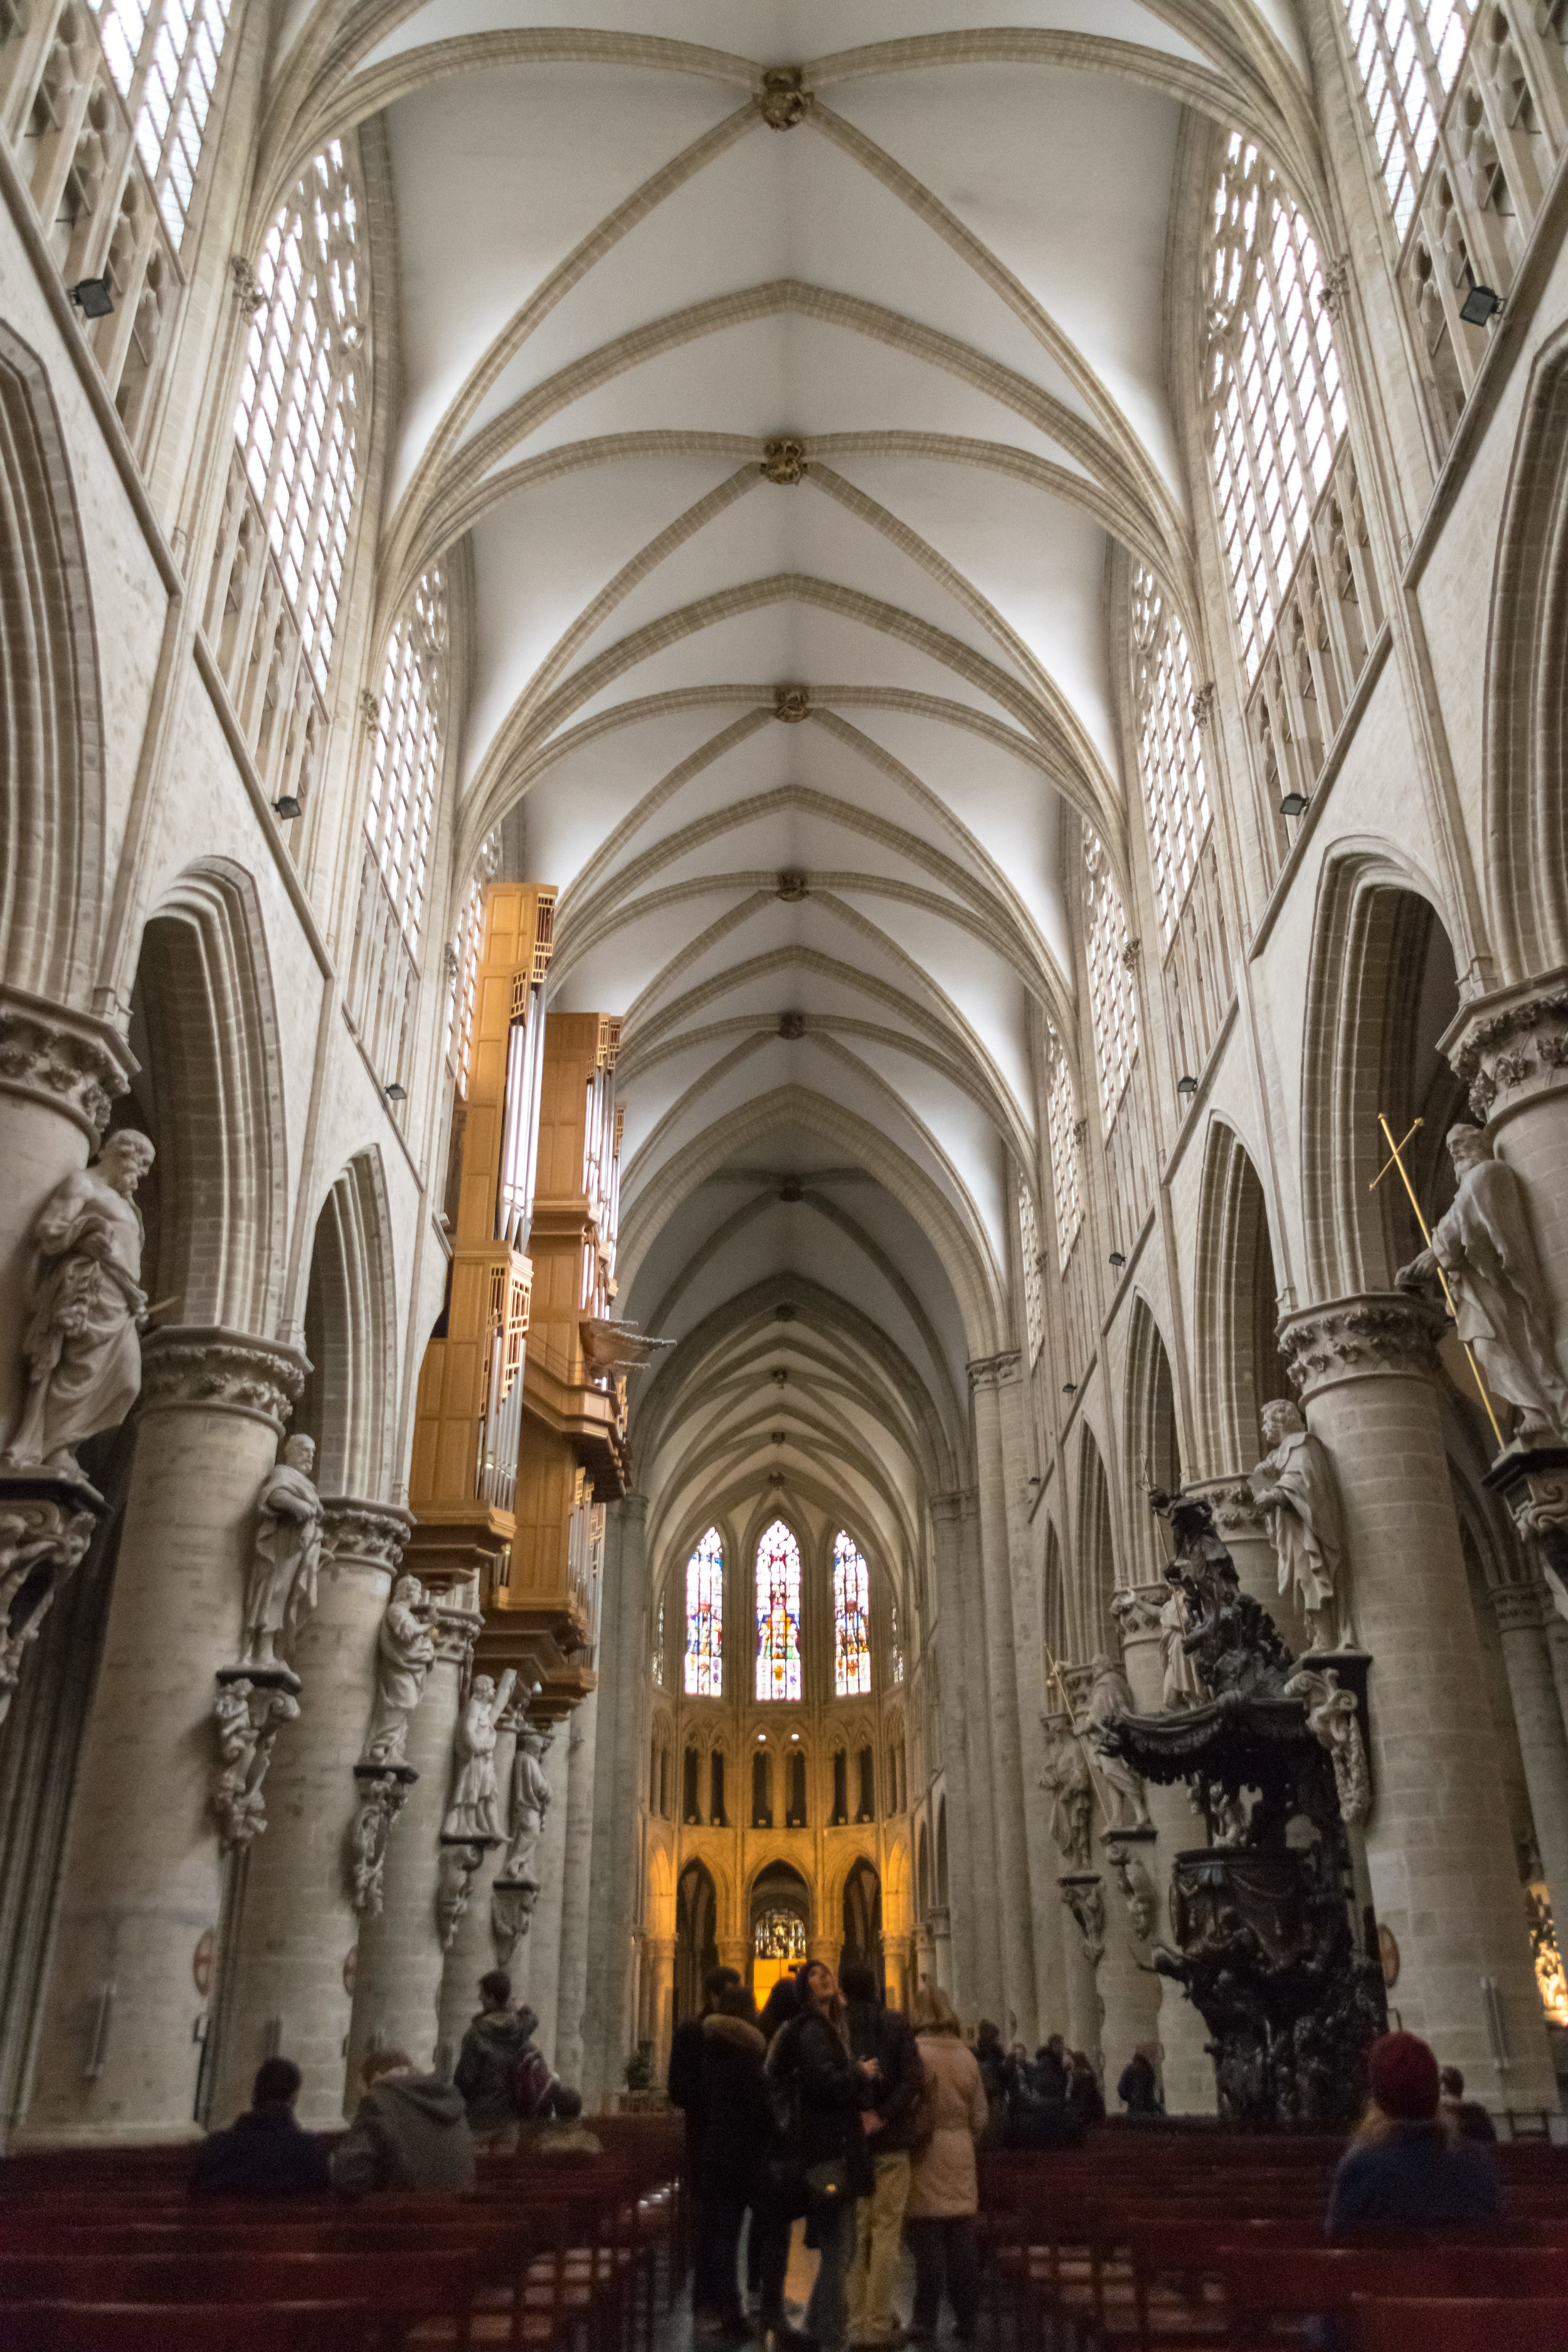 where Belgian royalty is married (the last time was 2003)